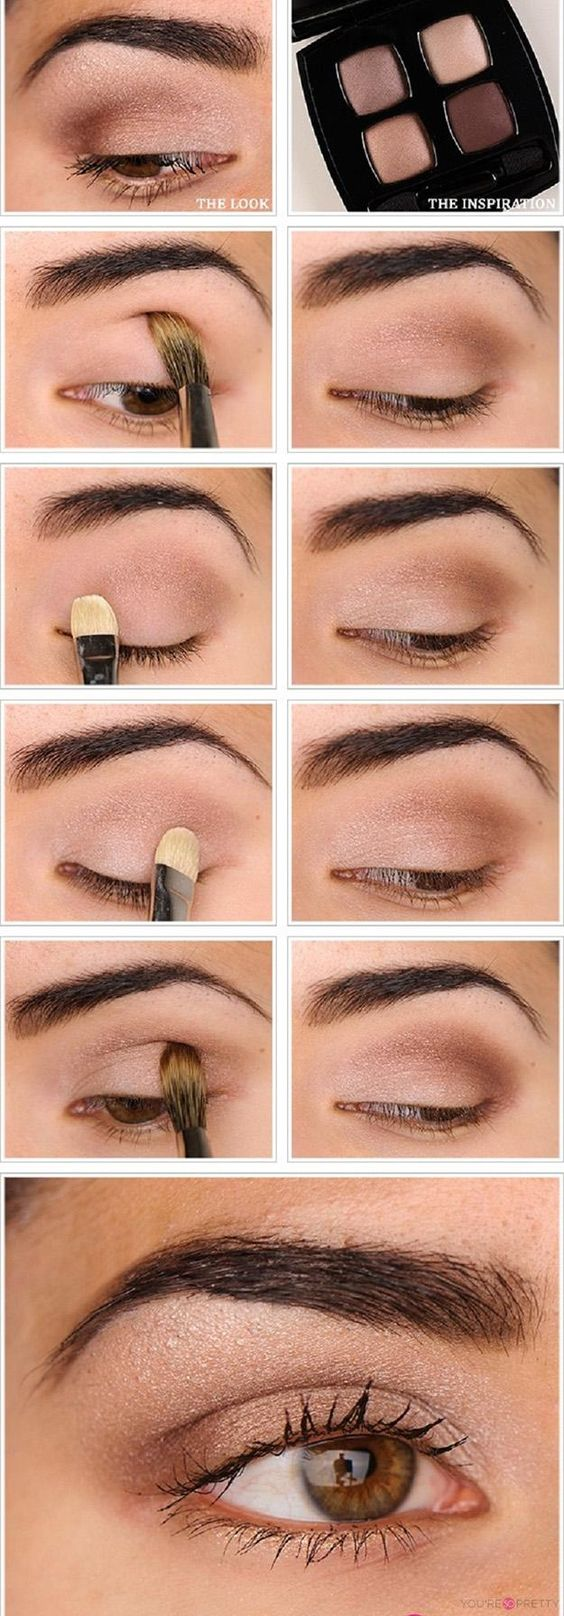 11 Eye Makeup Tutorials You Want to Try for Office Looks - Pretty